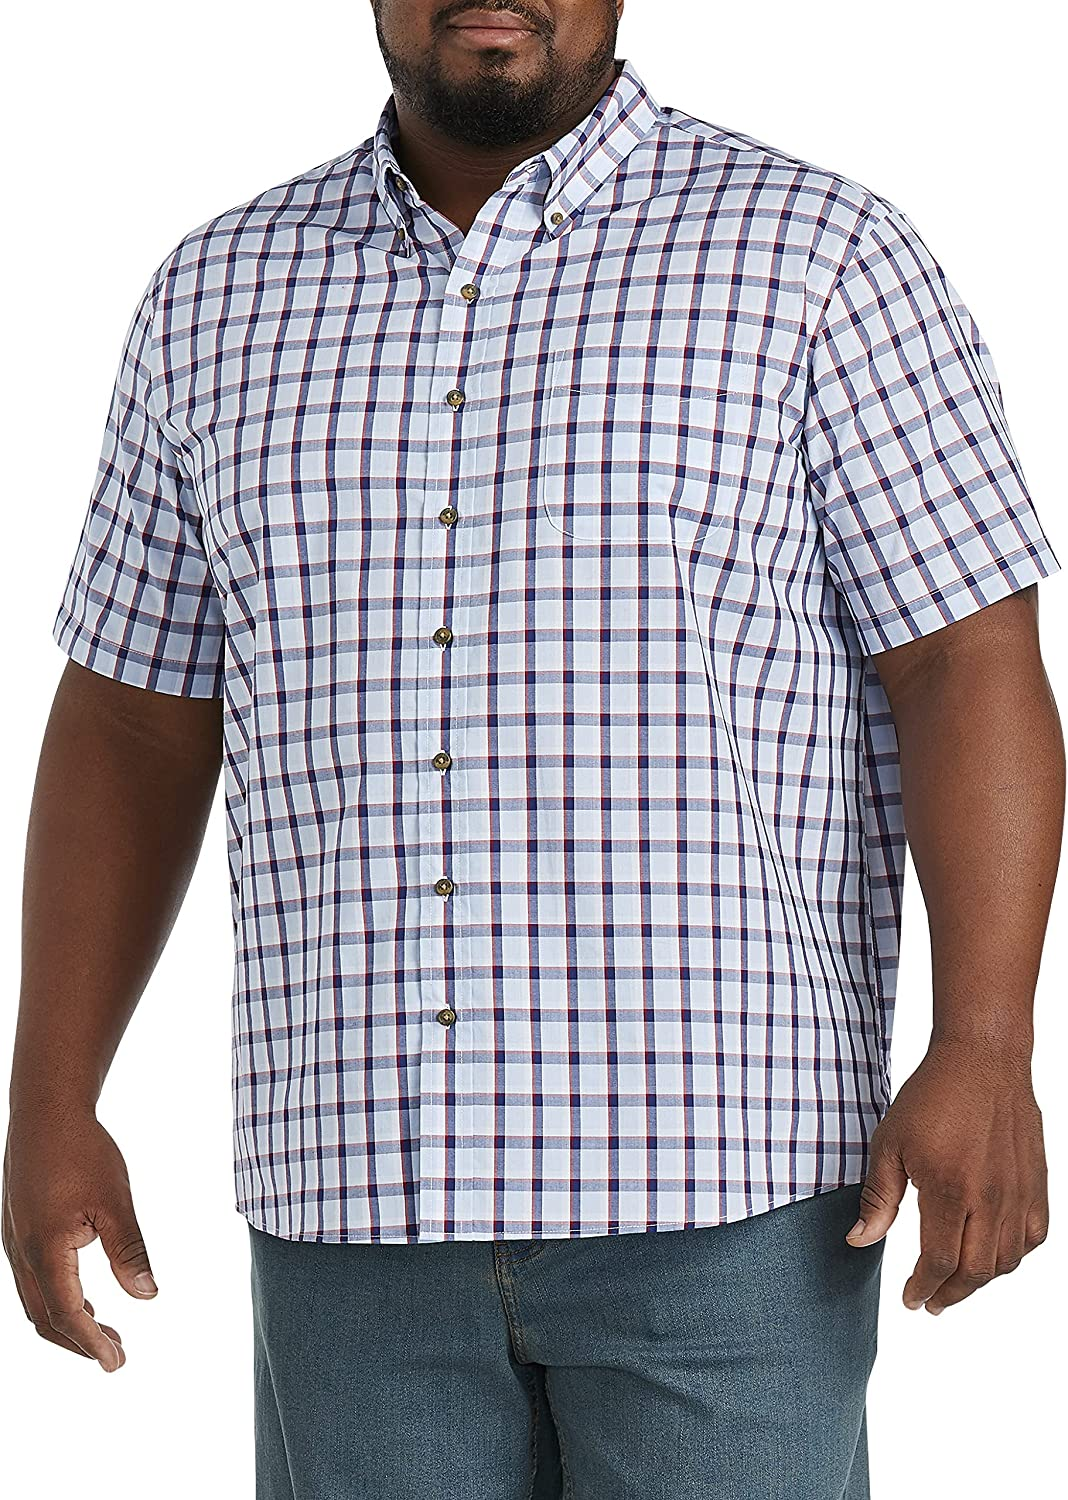 Harbor Bay by DXL Big and Tall Easy-Care Medium Stripe Sport Shirt, Red